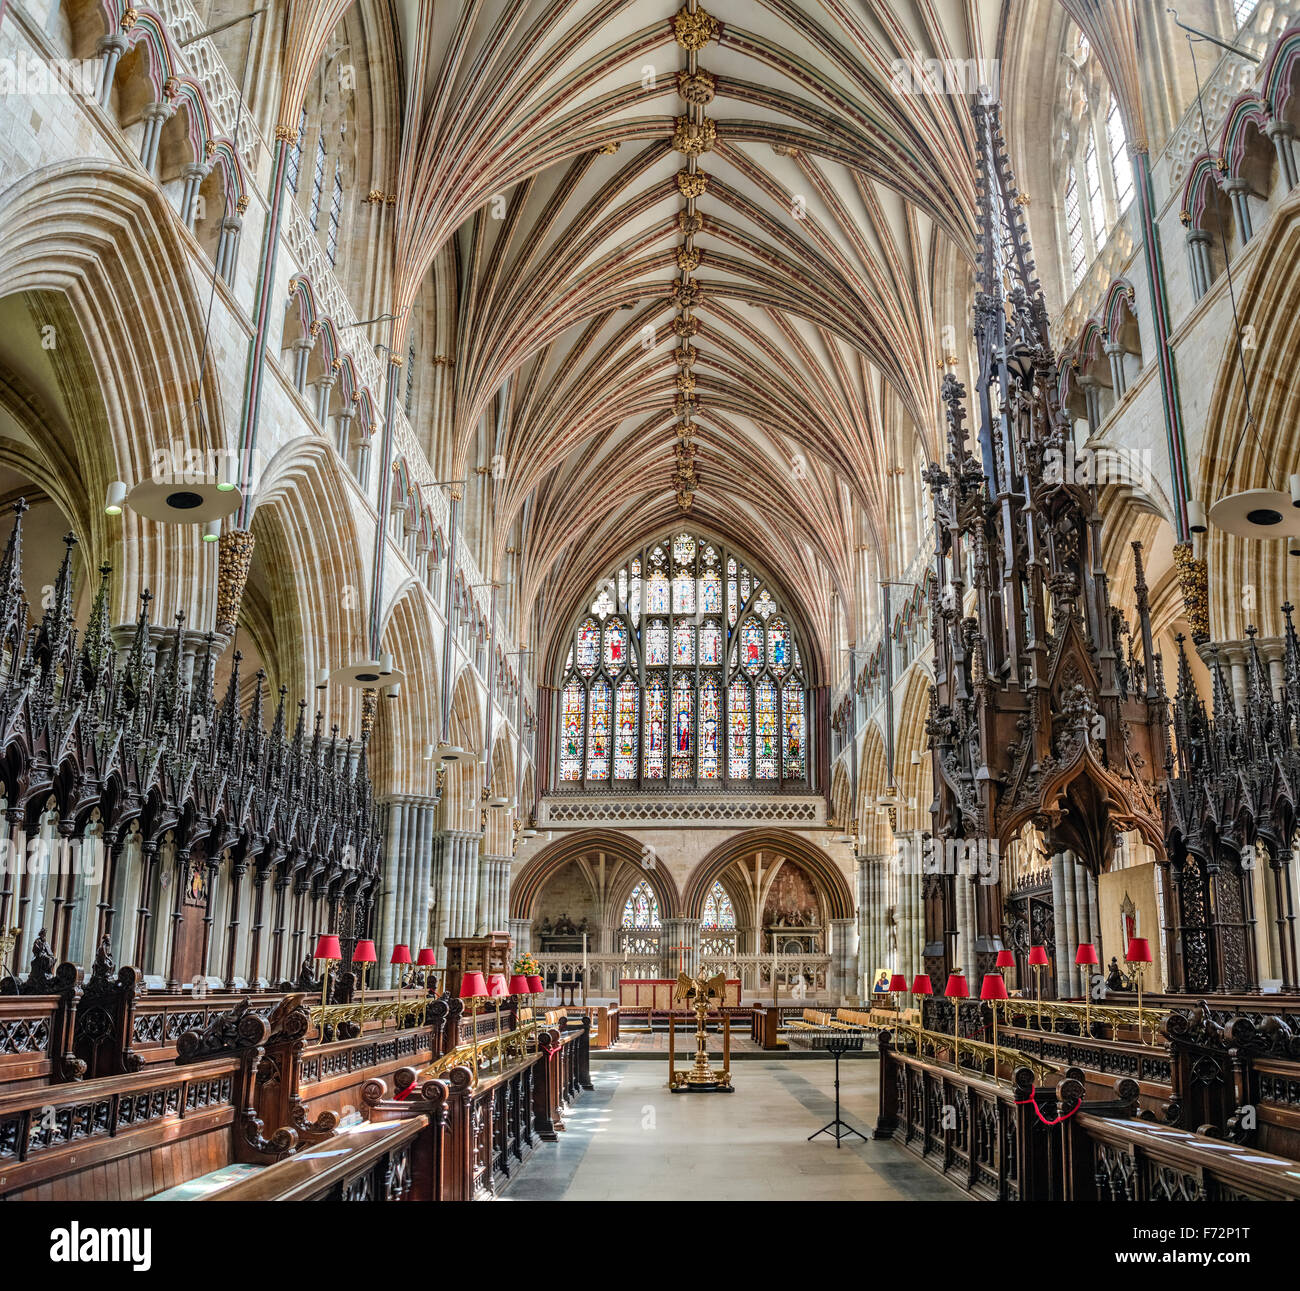 Interior of Exeter Cathedral, Devon, England, UK - Stock Image